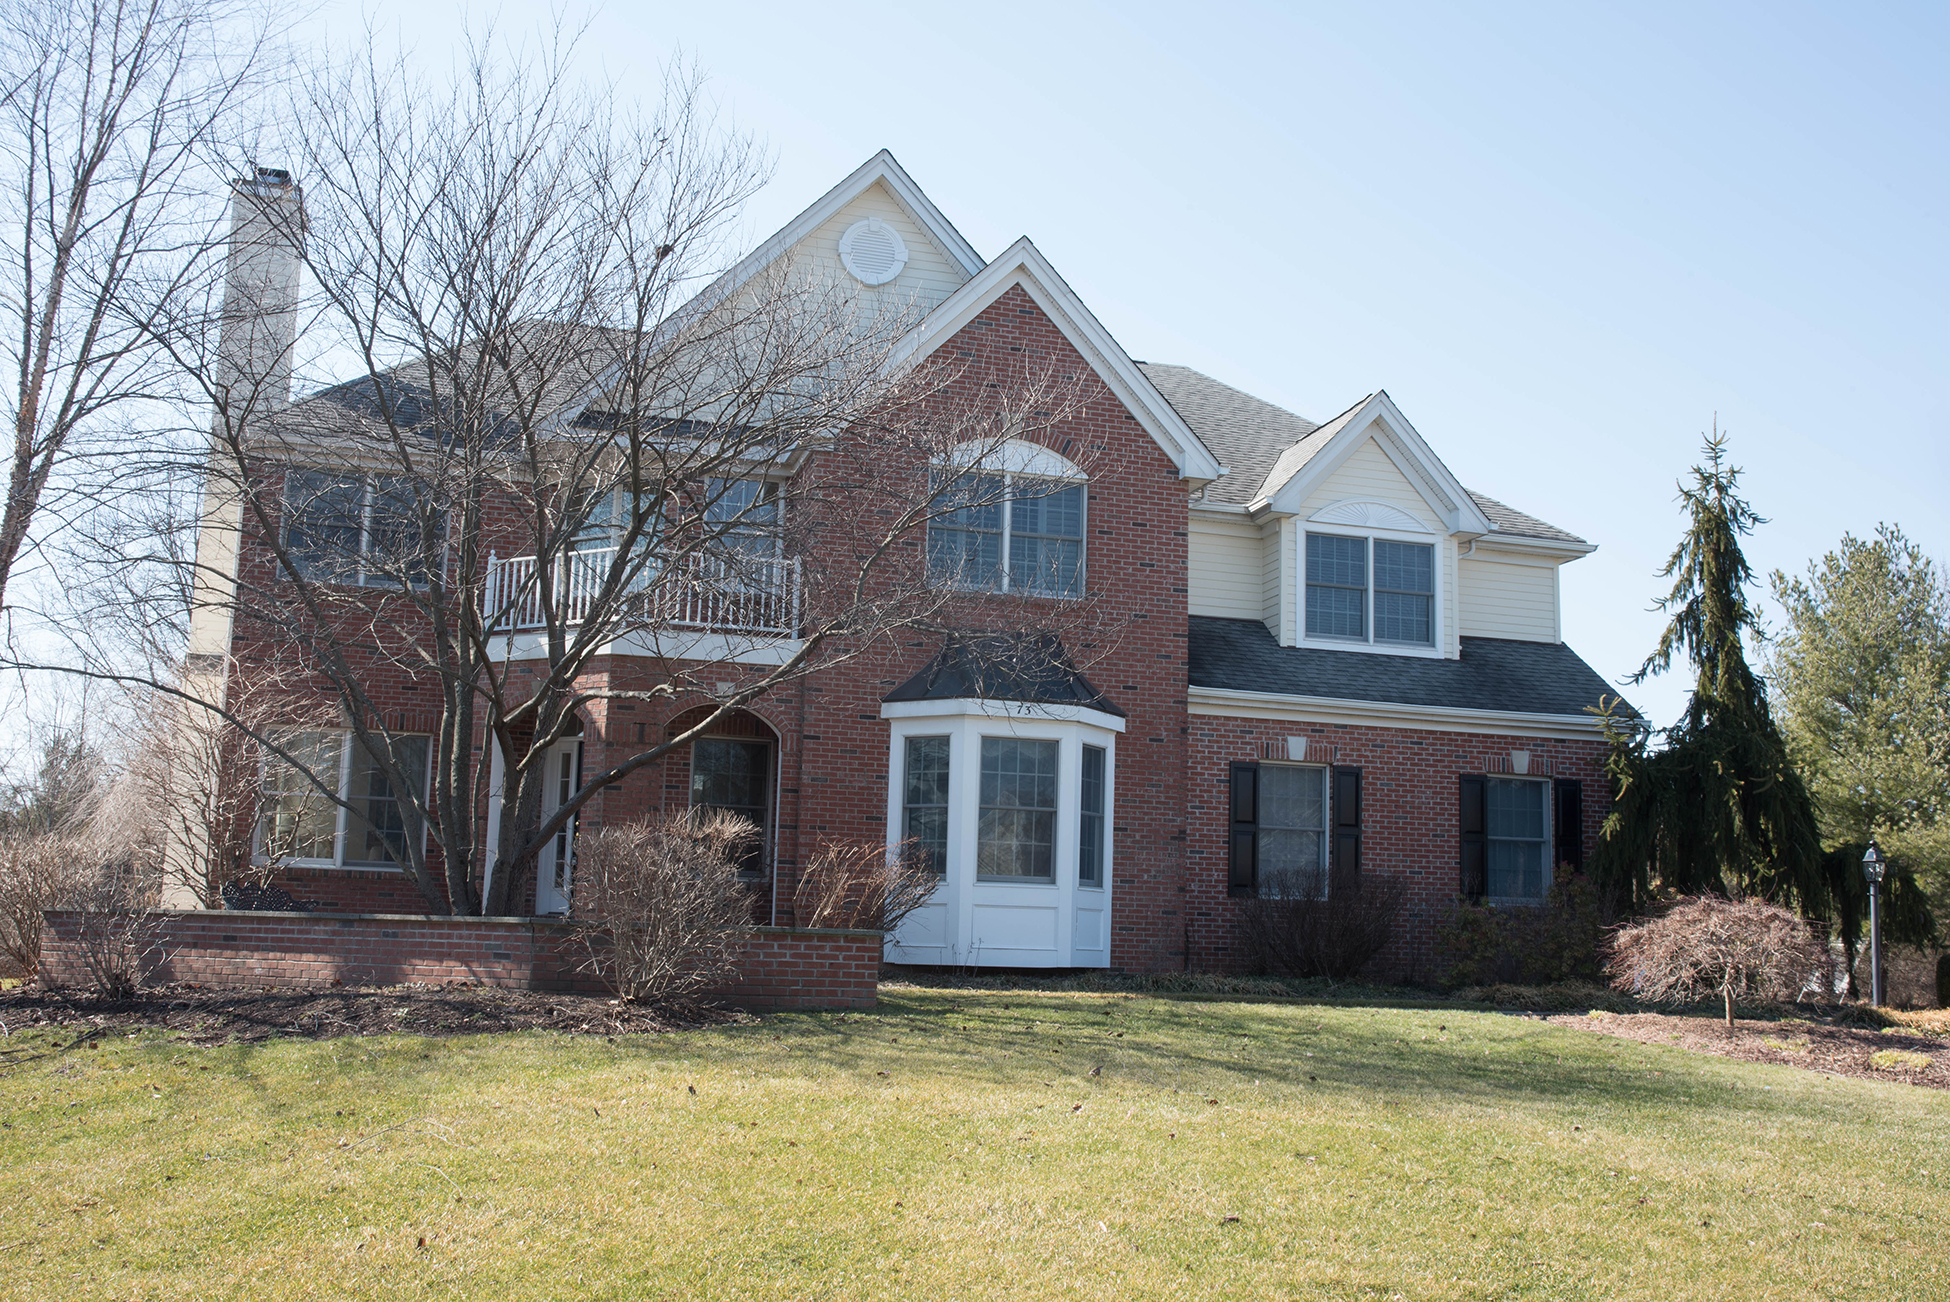 rentals property at Make Your Move To Cherry Valley - Montgomery Township